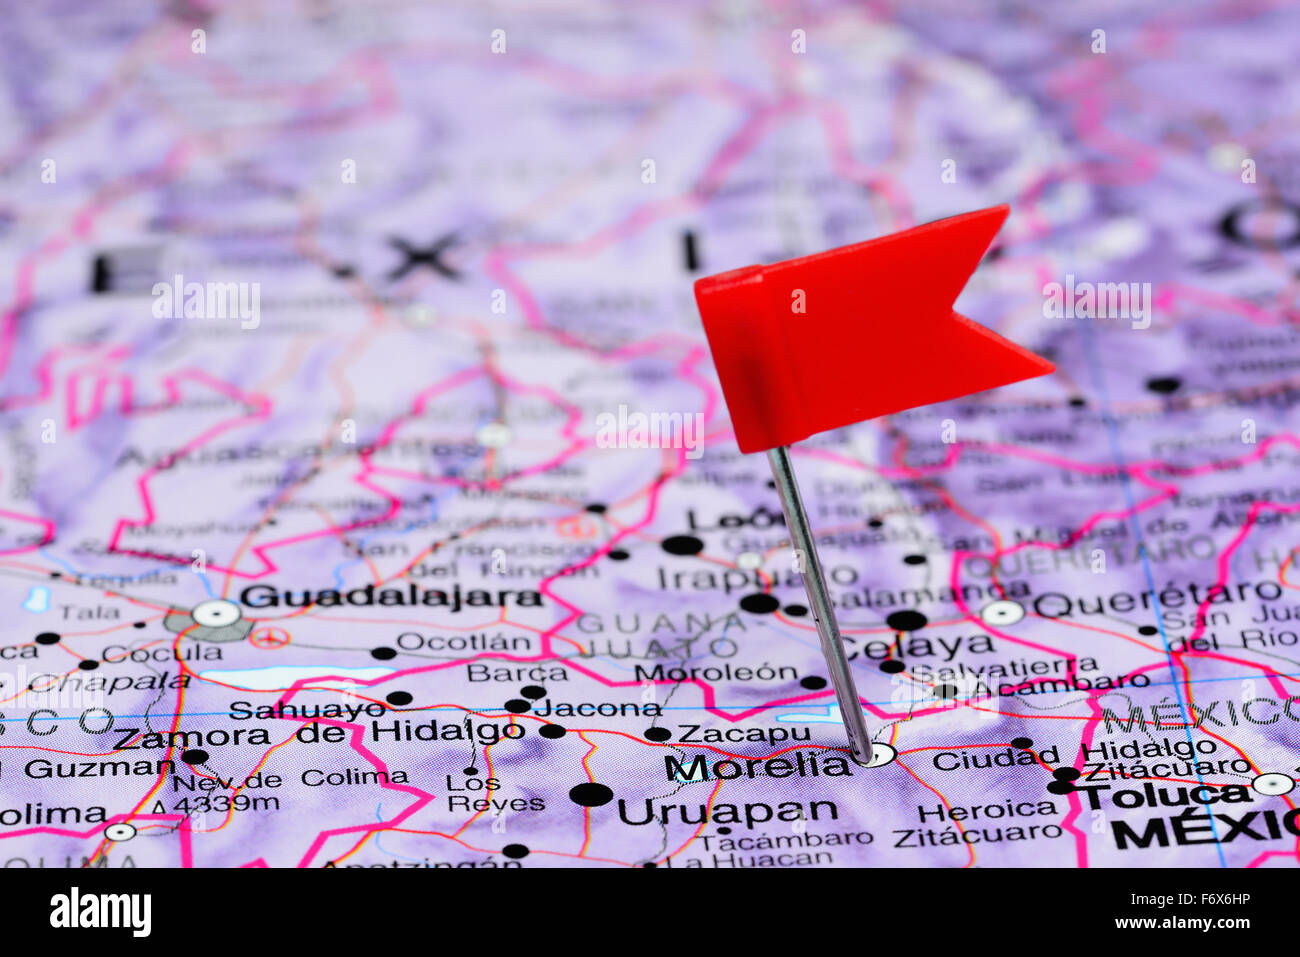 Morelia Pinned On A Map Of Mexico Stock Photo 90315730 Alamy